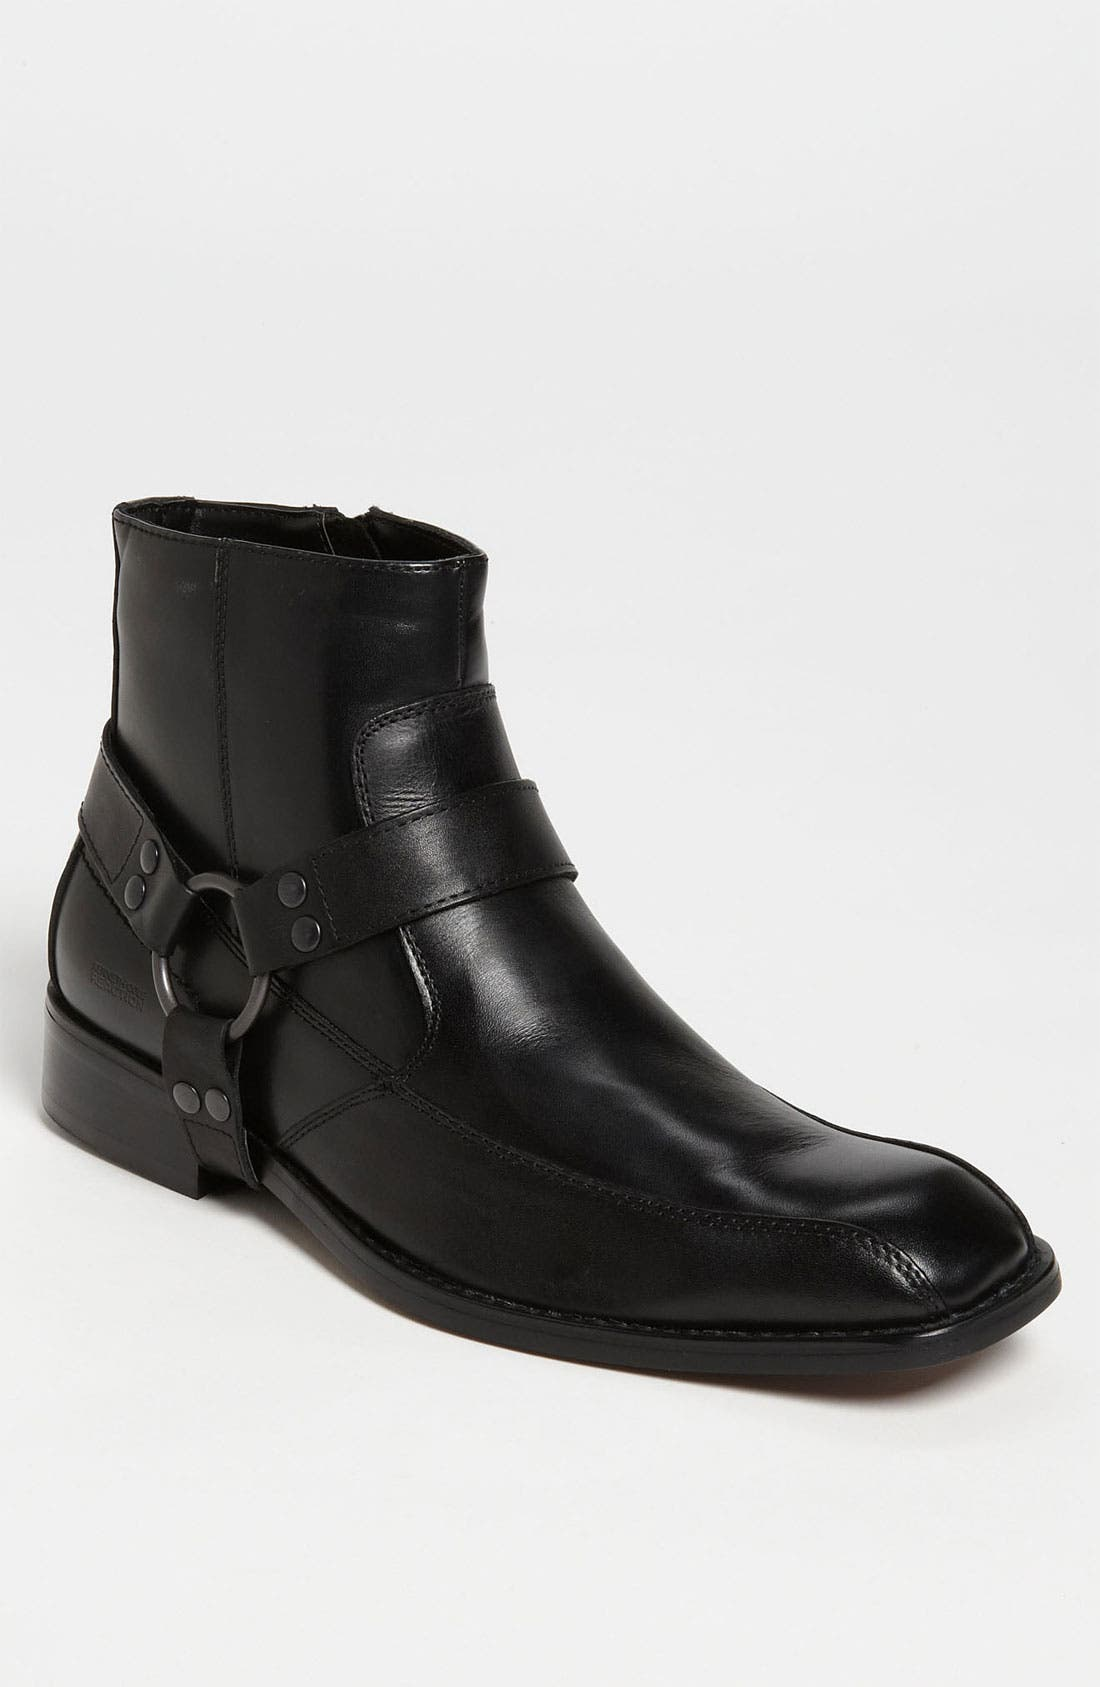 Alternate Image 1 Selected - Kenneth Cole Reaction 'East Bound' Boot (Online Only)